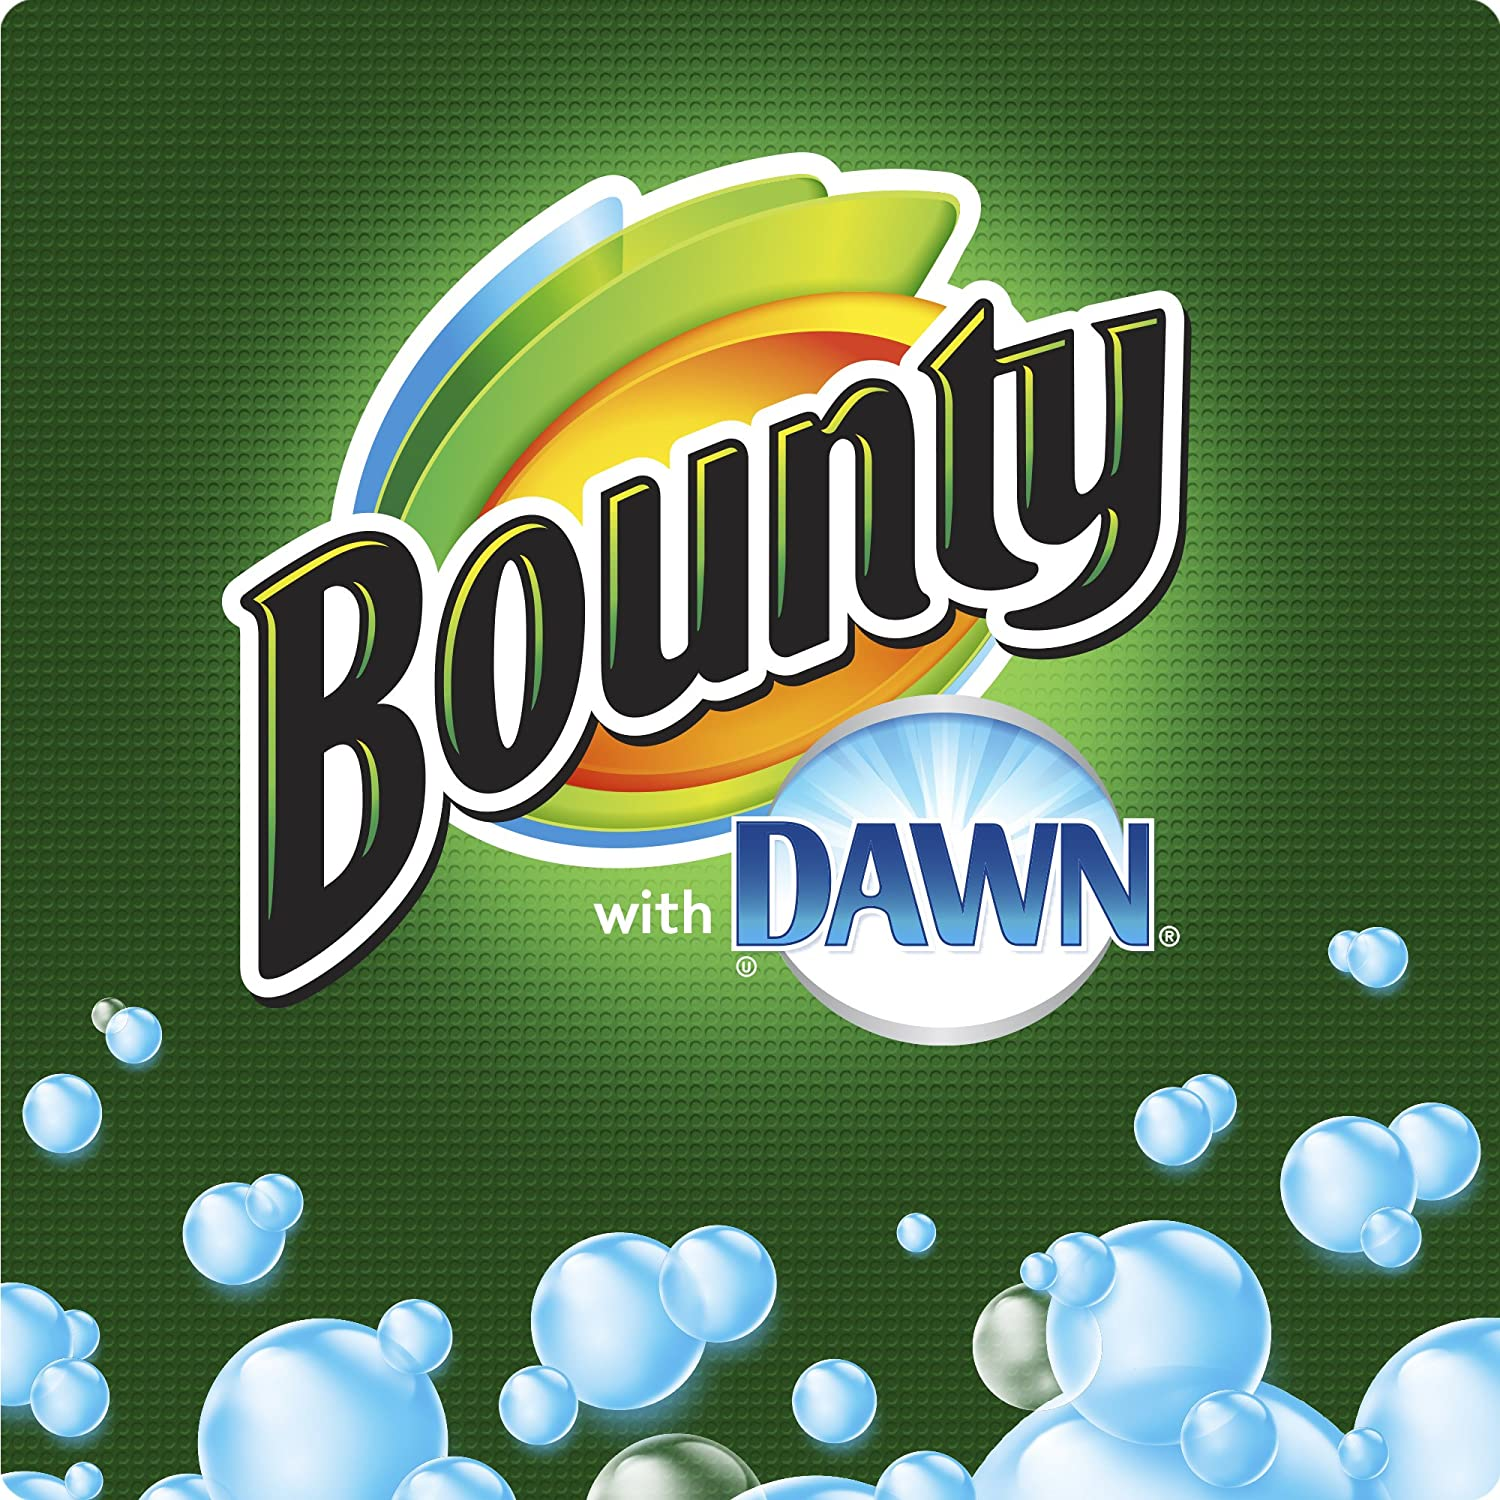 Amazon.com : Bounty with Dawn, White, Large Rolls, 3 Ct : Grocery & Gourmet Food